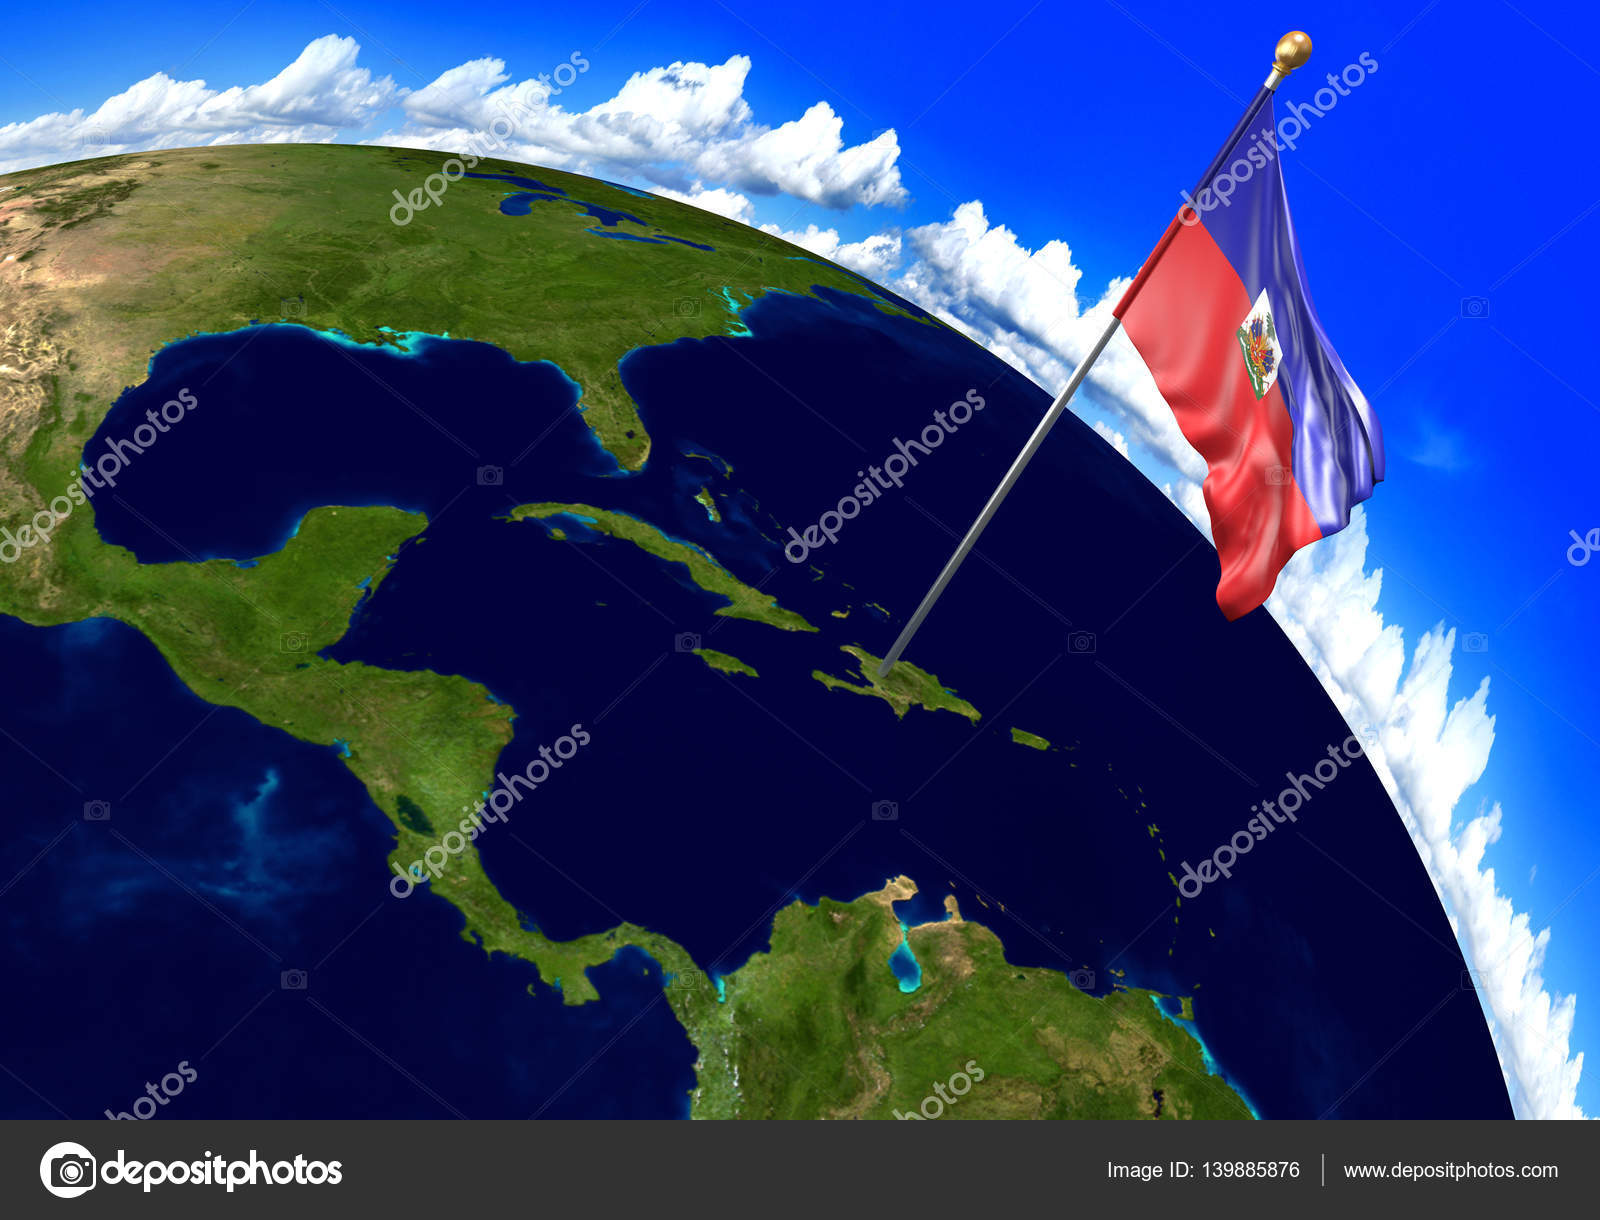 Haiti national flag marking the country location on world map 3d 3d render of the national flag of haiti over the geographic location of the country on a world map parts of this image furnished by nasa gumiabroncs Images